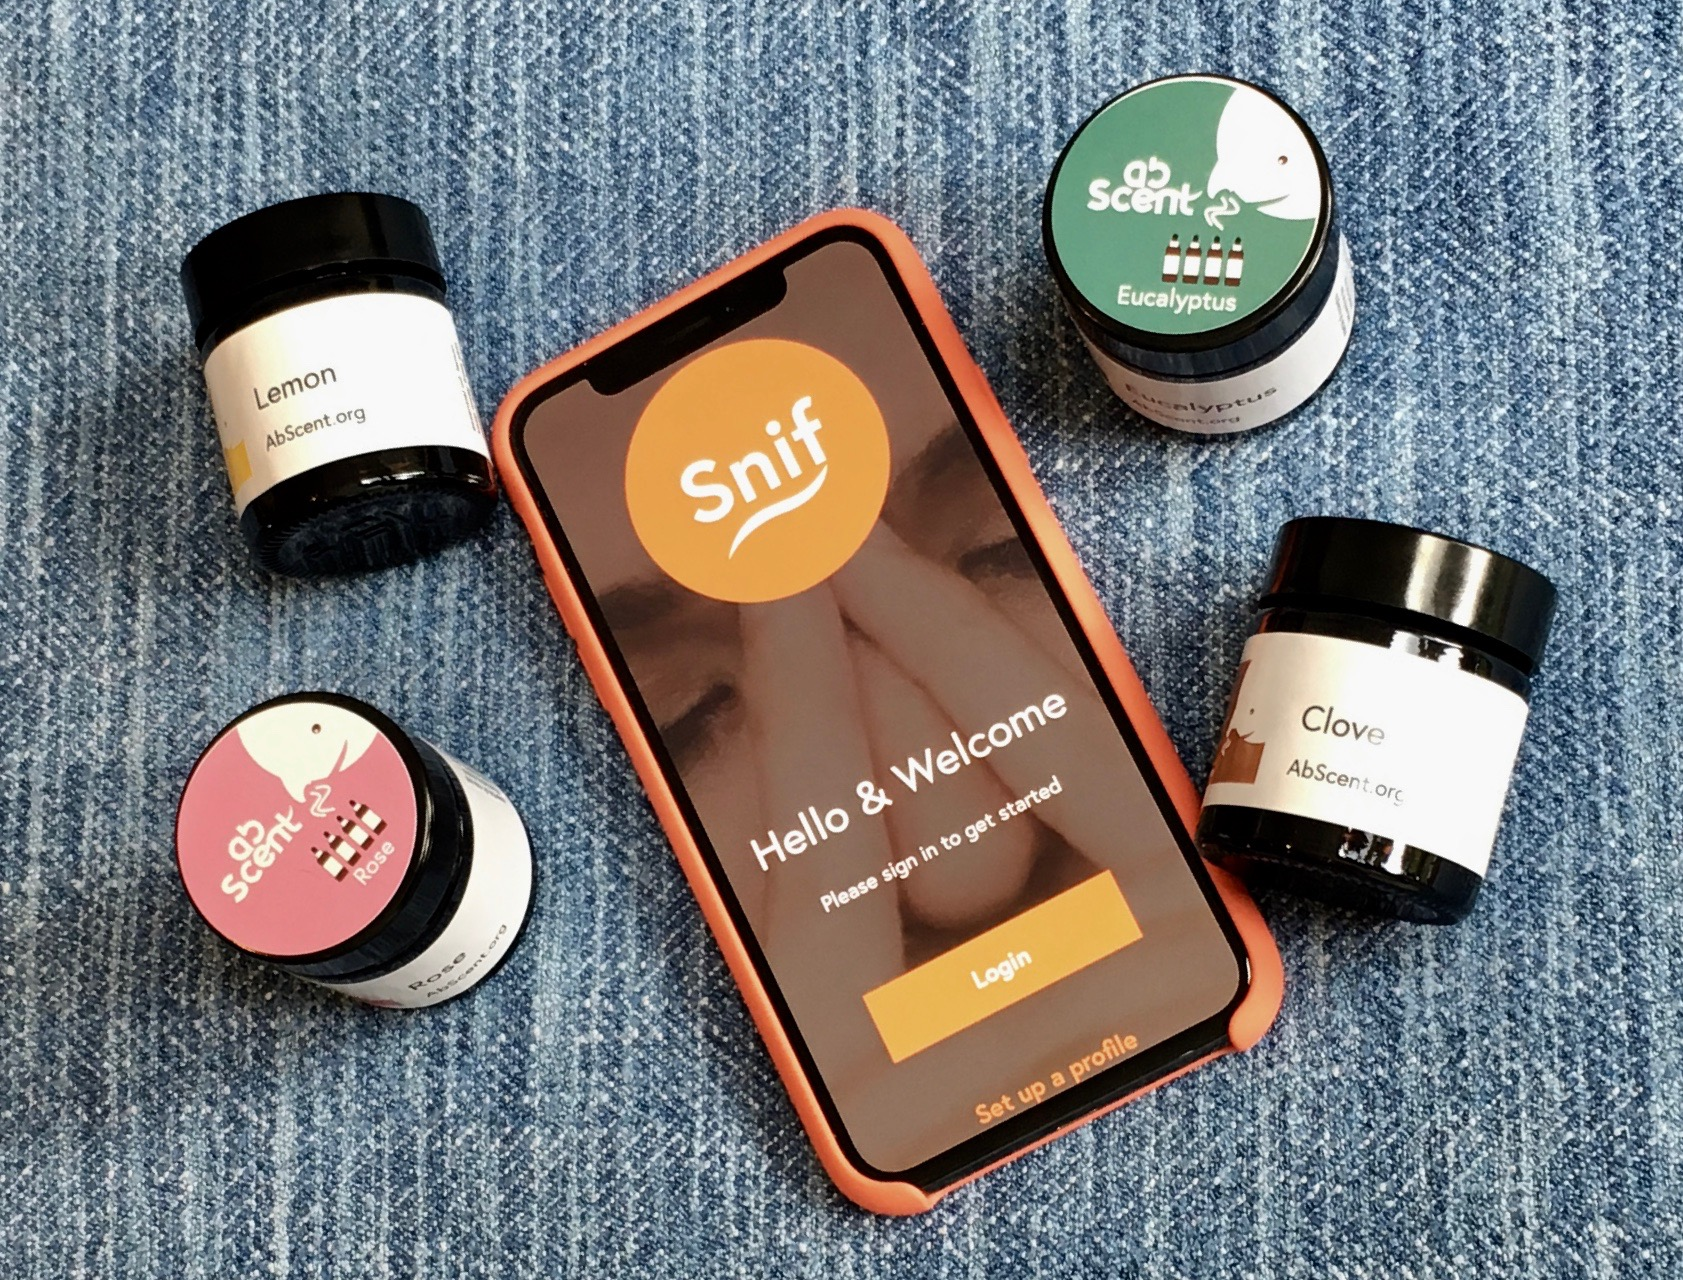 Sniff App on mobile phone next to smell training jars